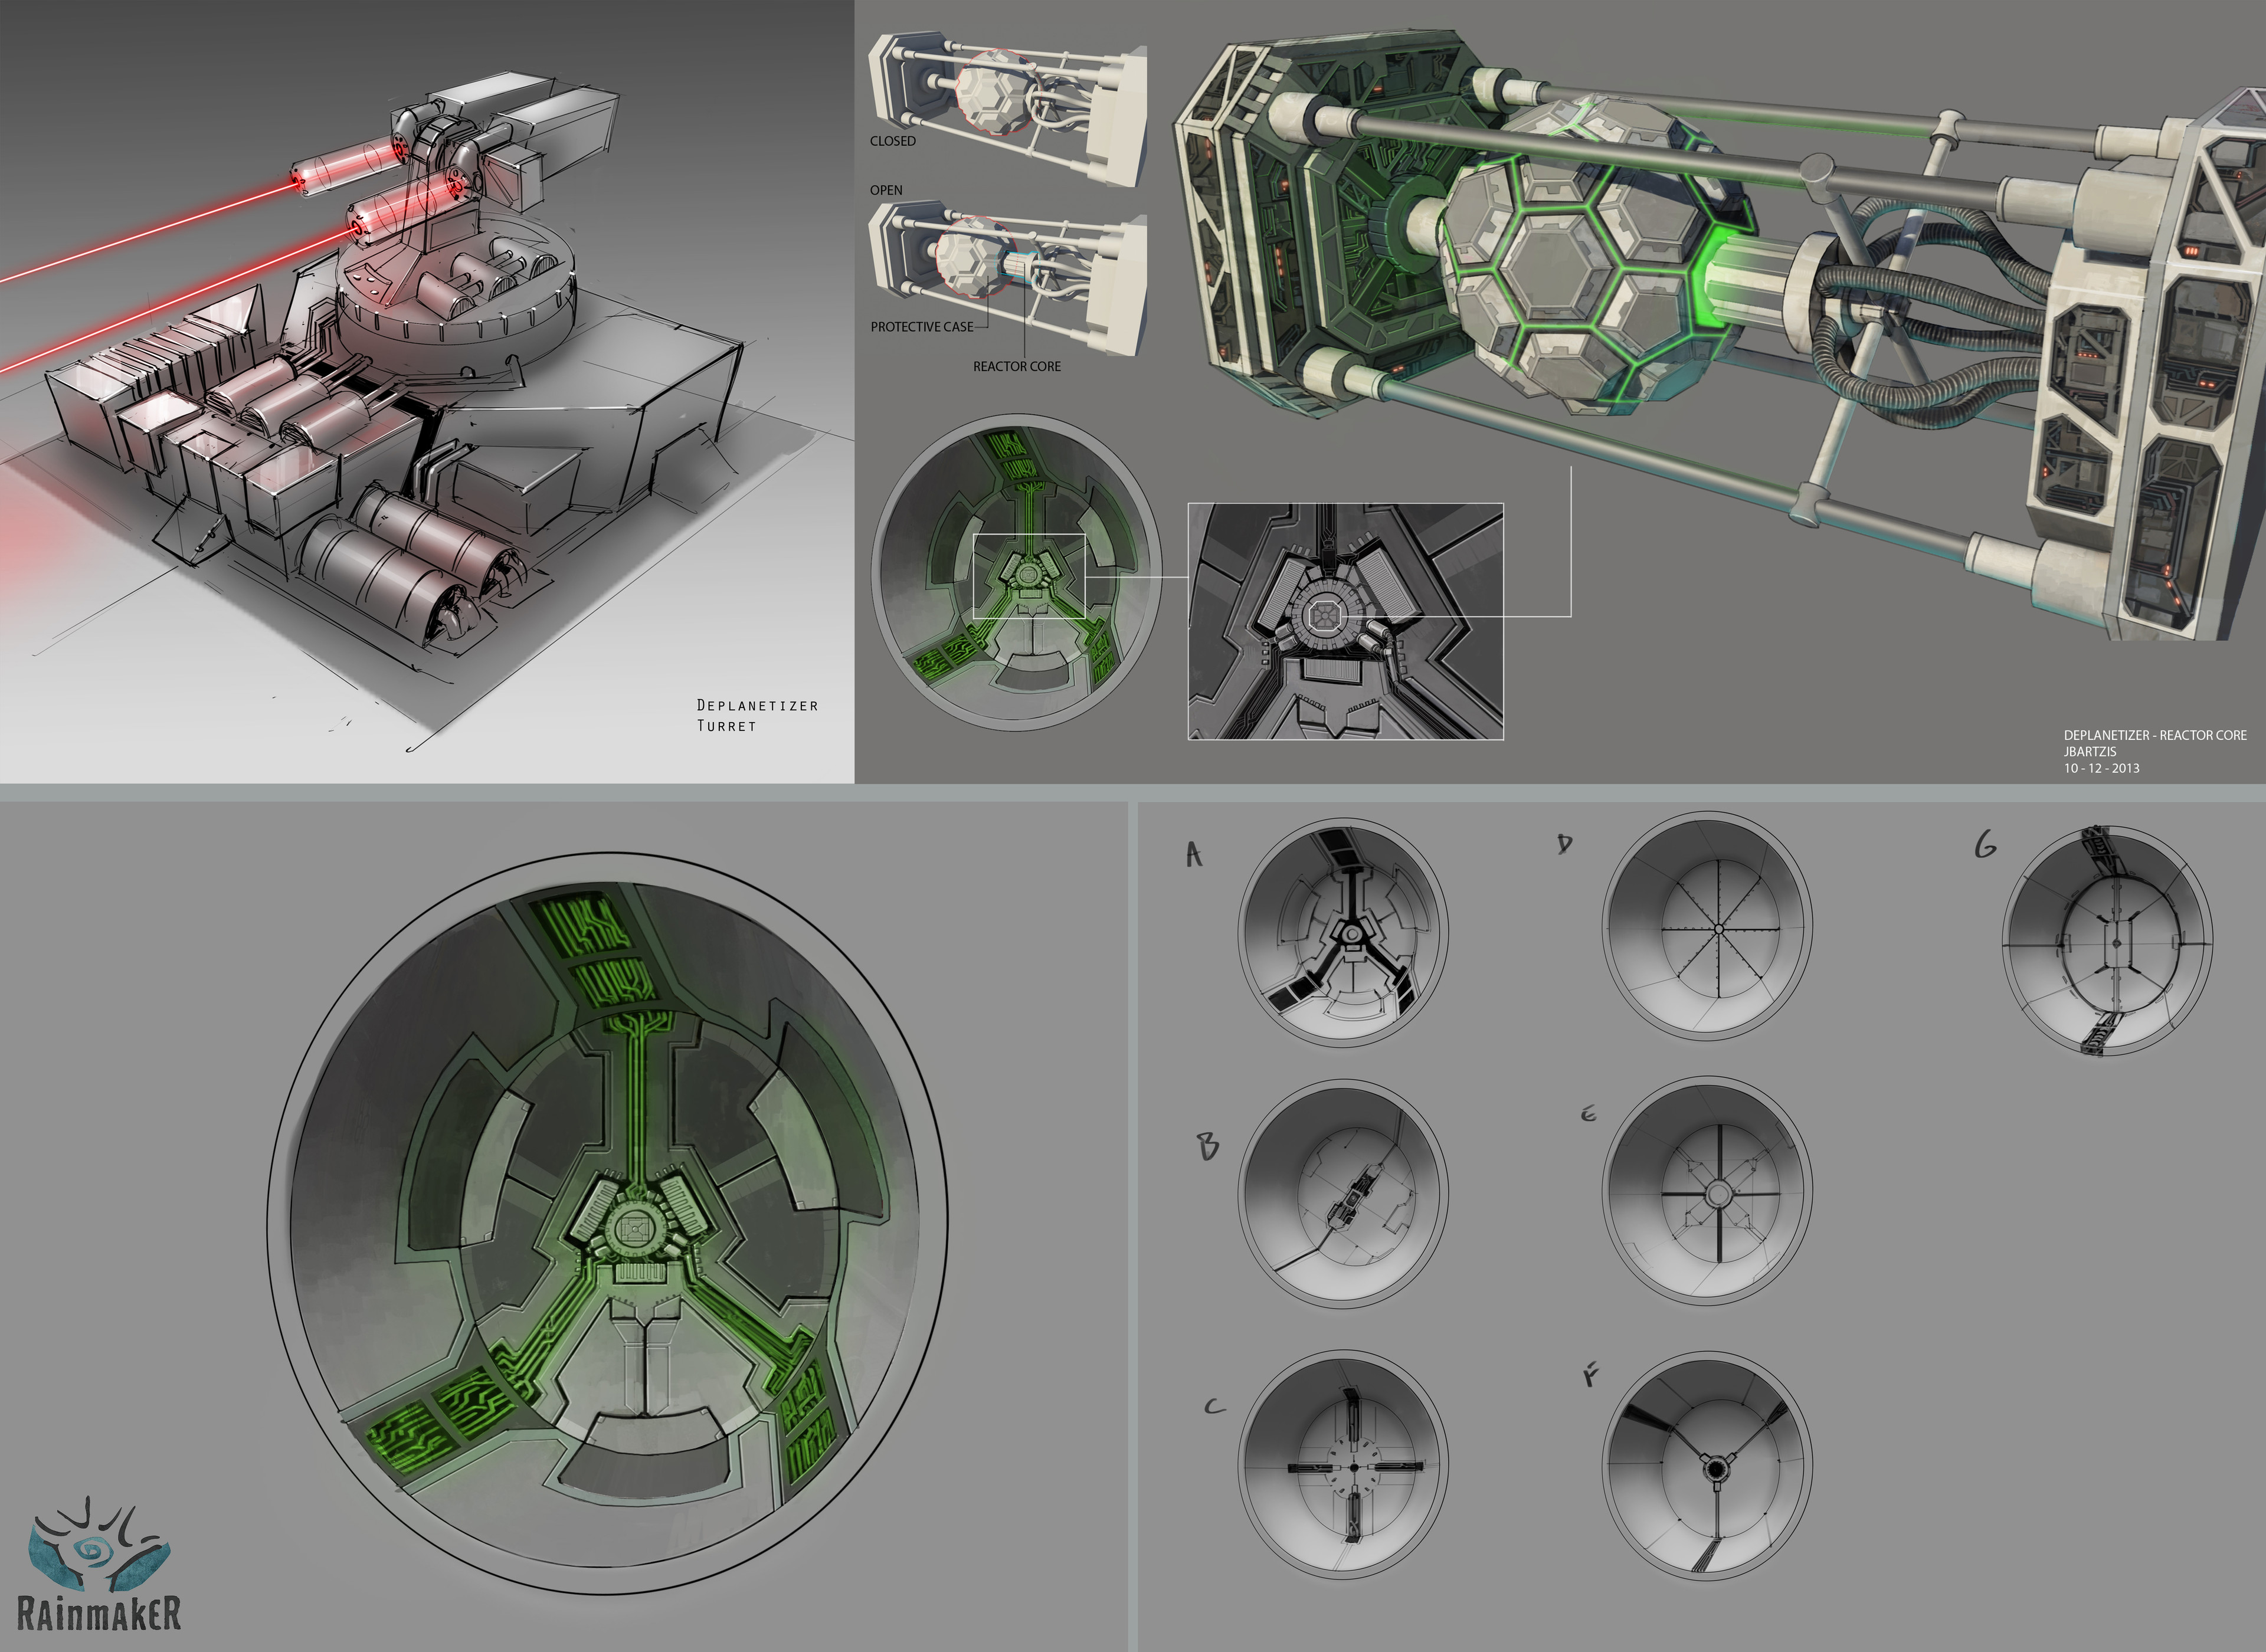 detail view of the deplanetizer reactor core and of the surrounding area. Also rough laser turret idea.